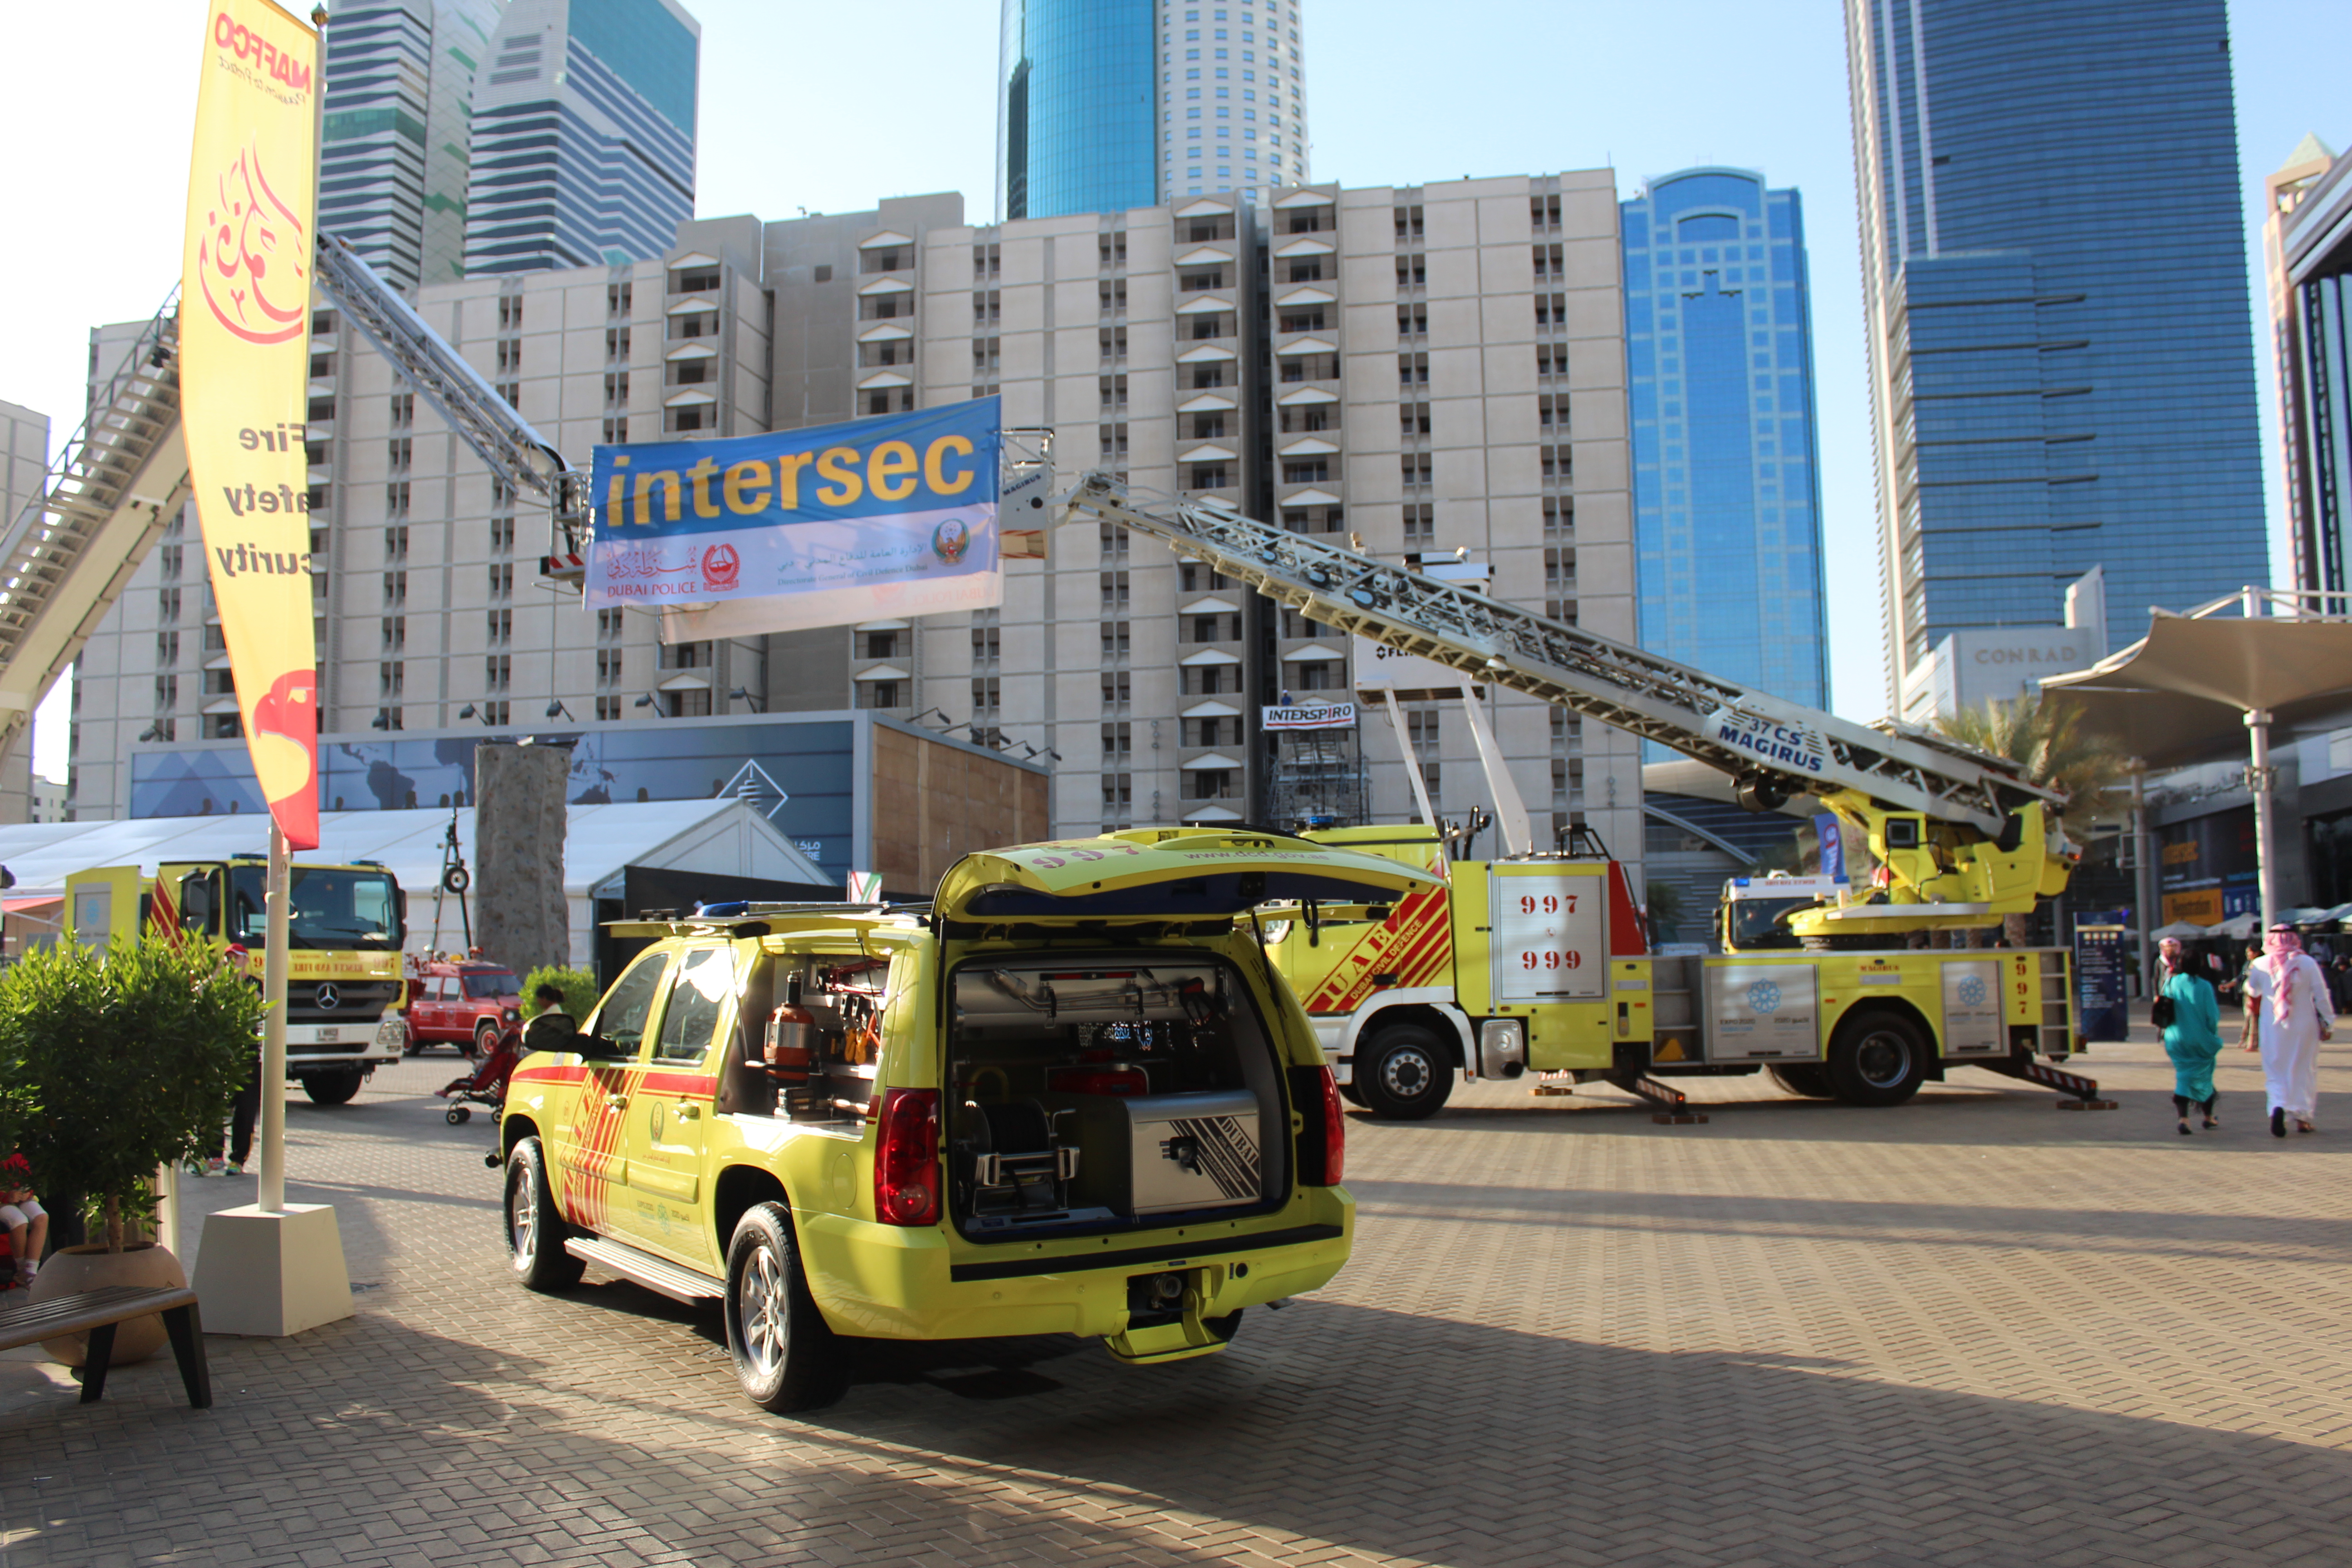 NFPA 80 at Intersec Conference in Dubai, UAE - National Fire.